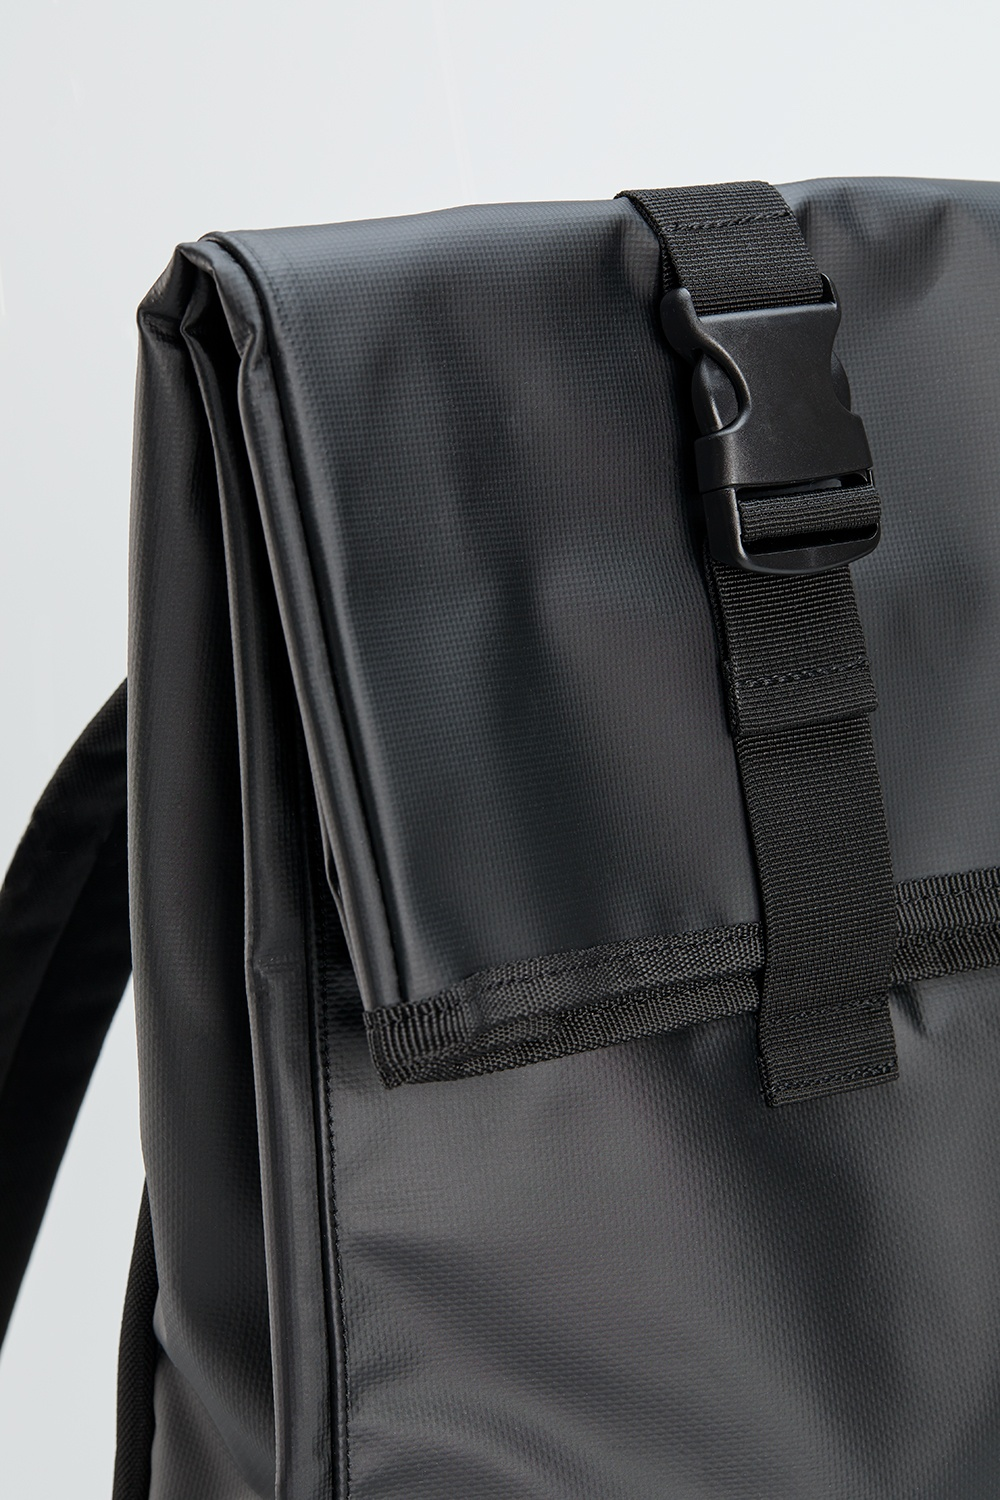 Sequoia backpack detail